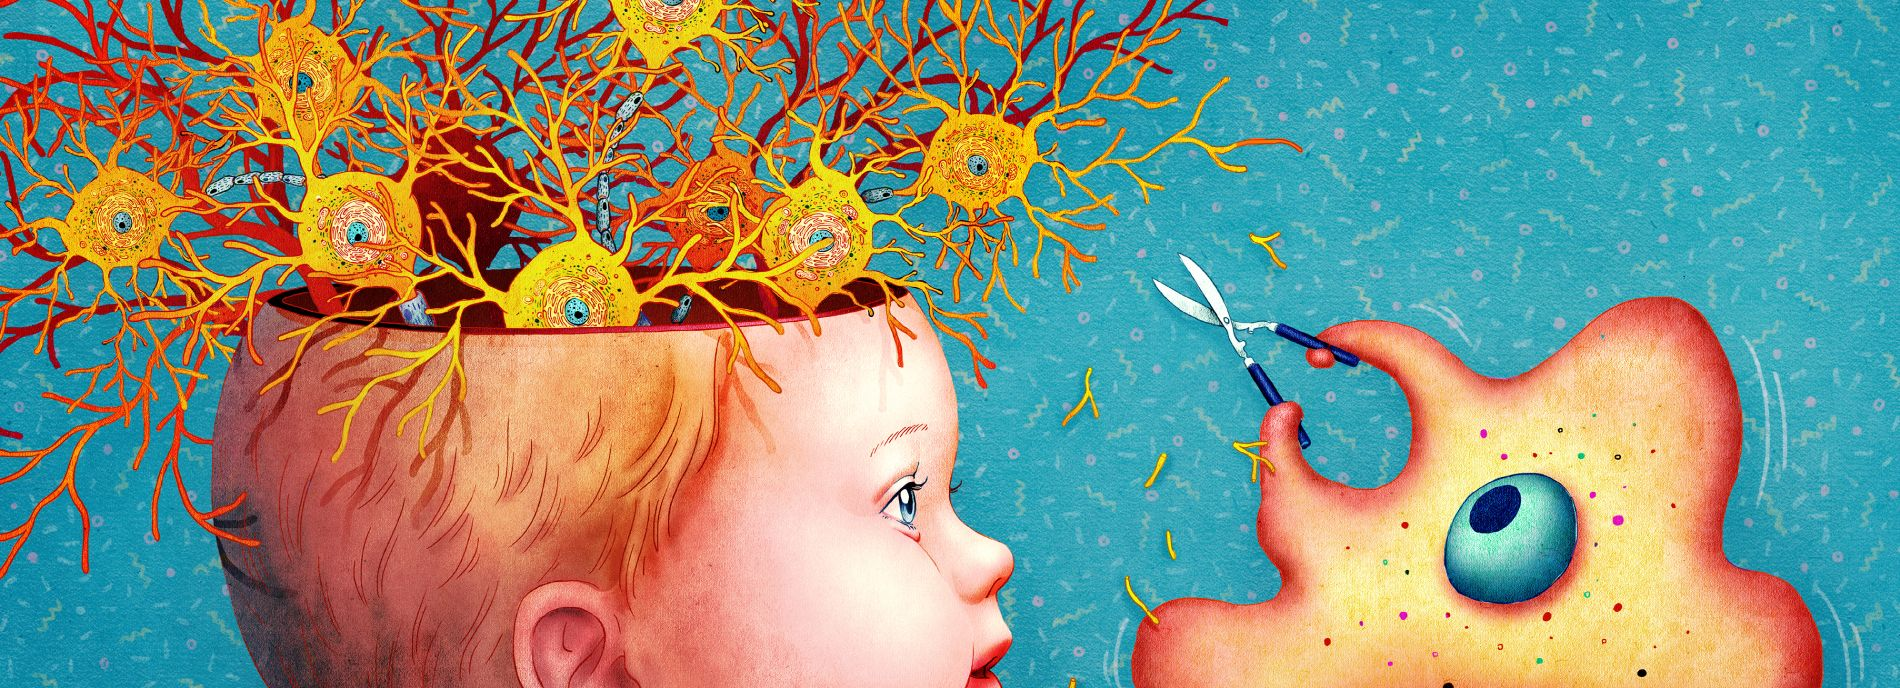 Once thought merely to be specialized immune system cells, microglia now appear to be master landscapers of the developing brain.